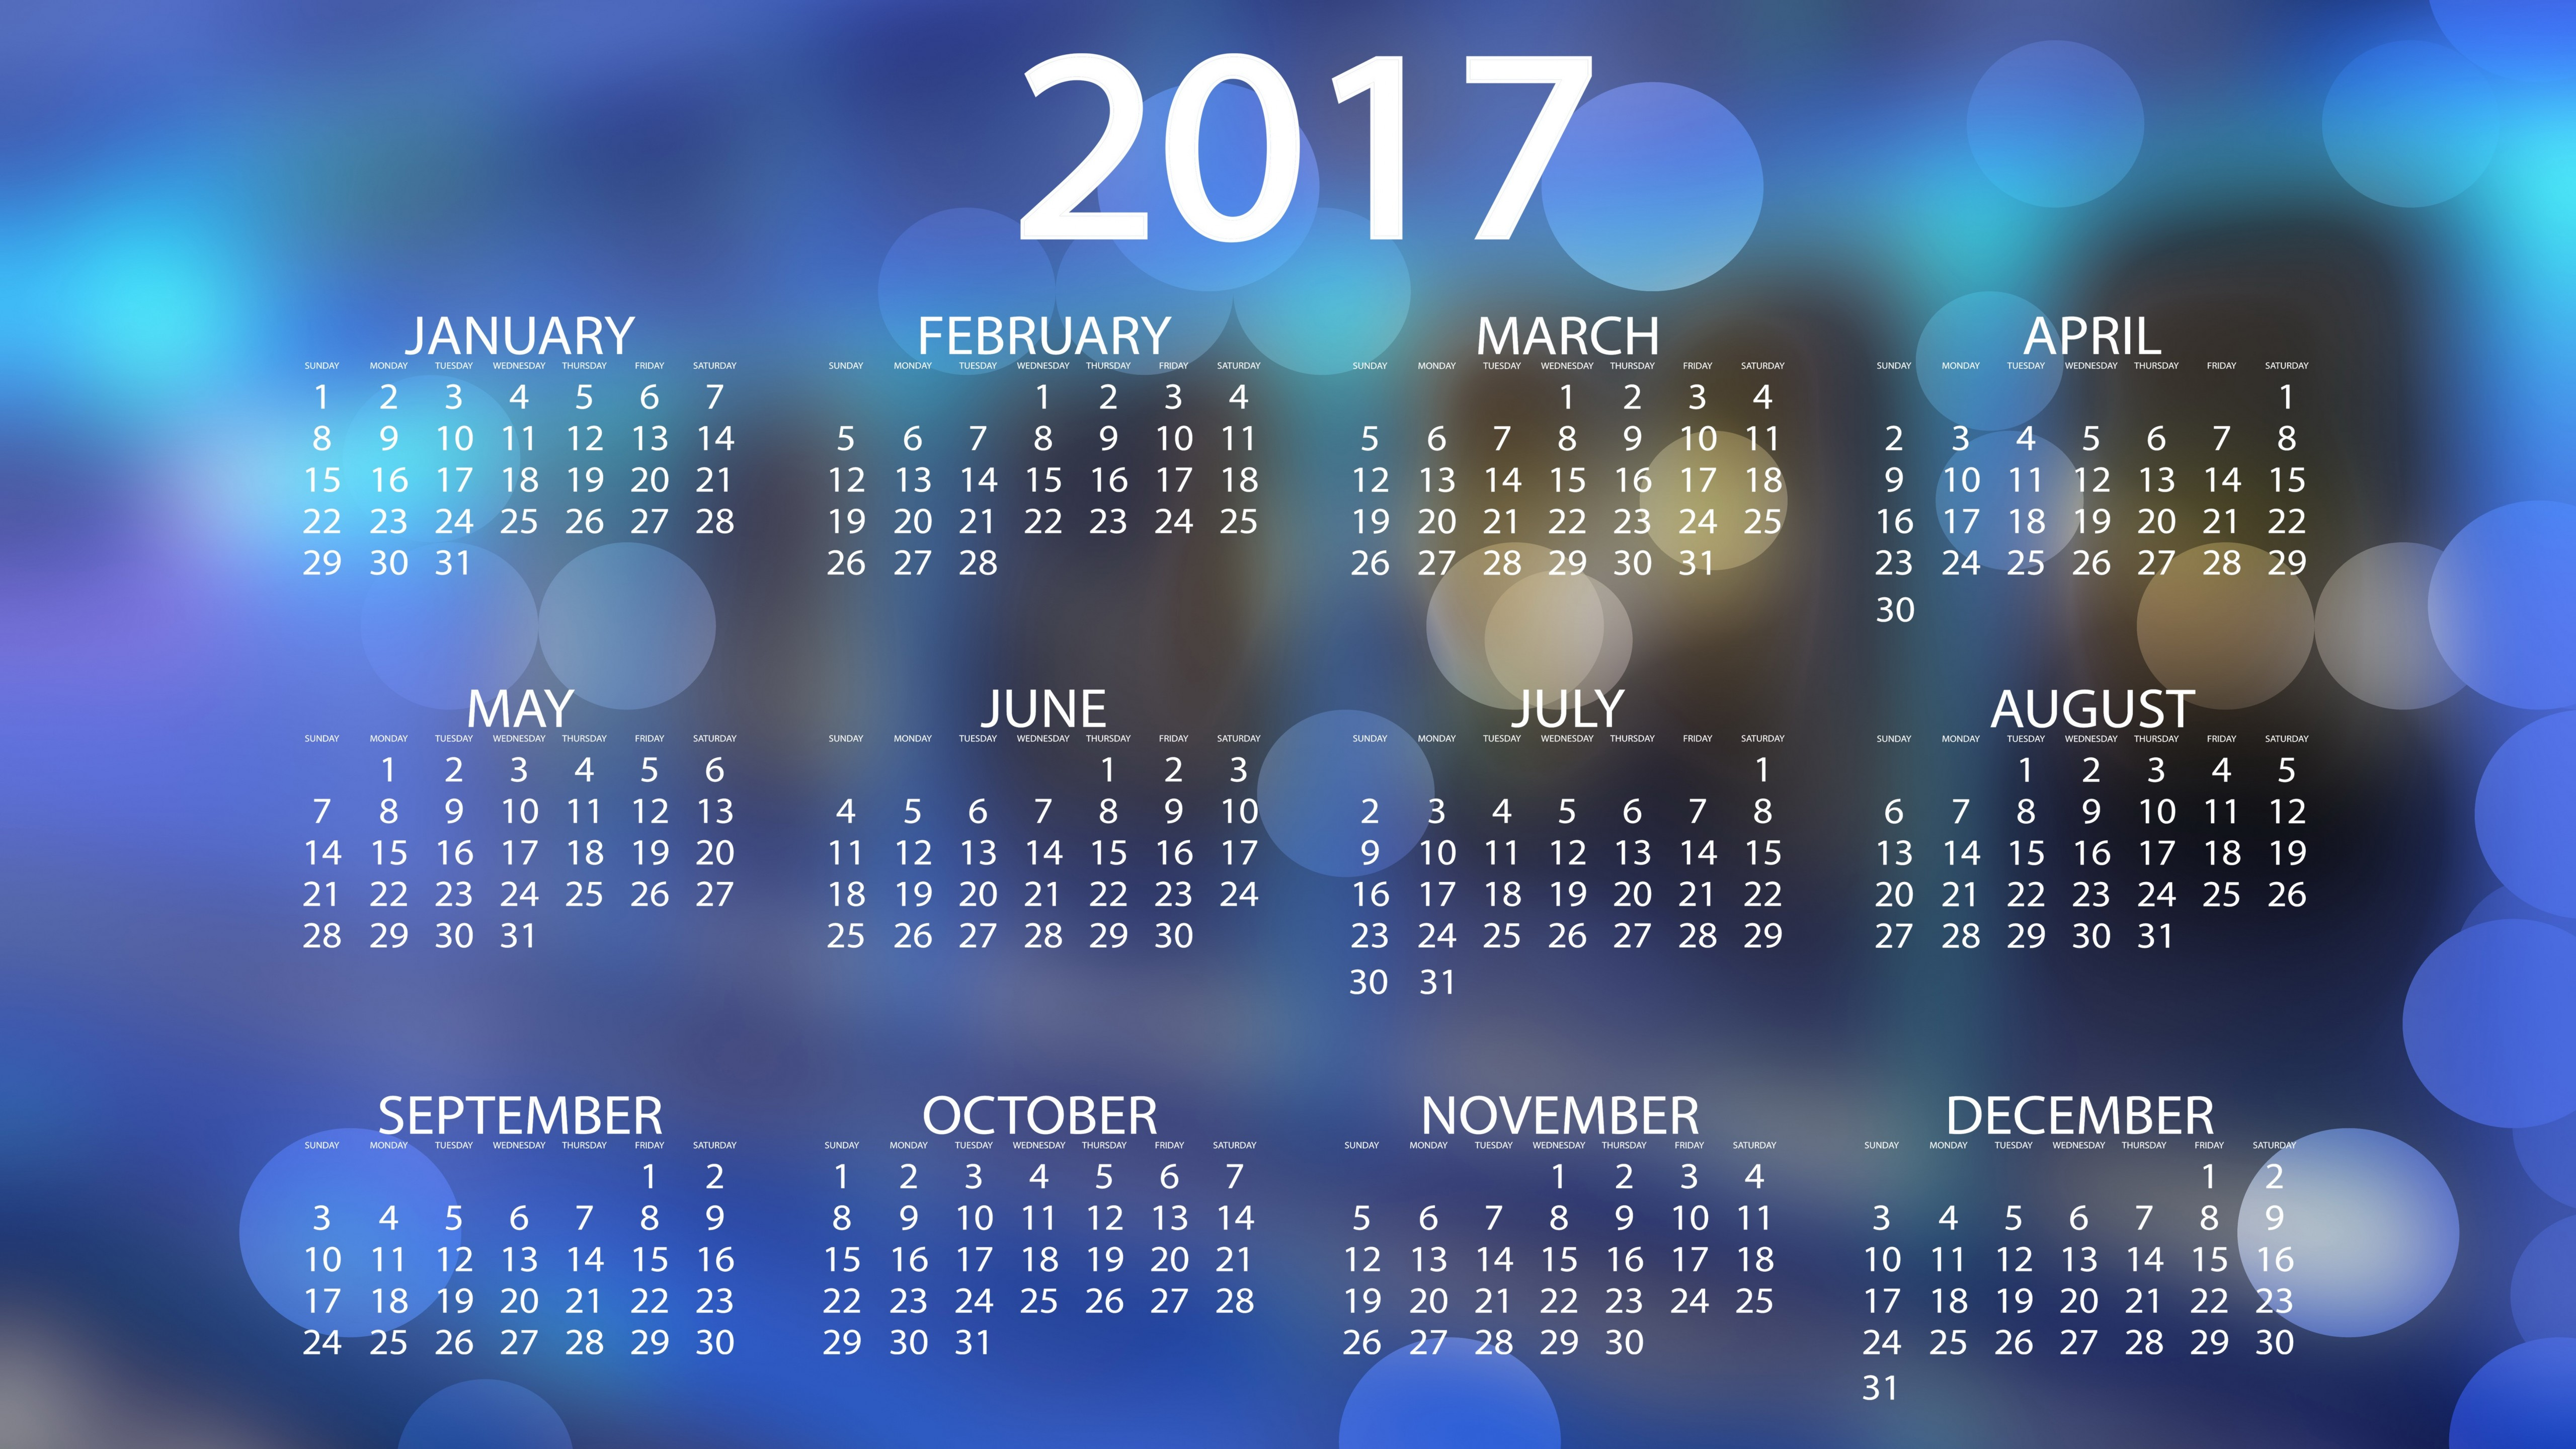 2017 calendar wallpaper 4k 5k background